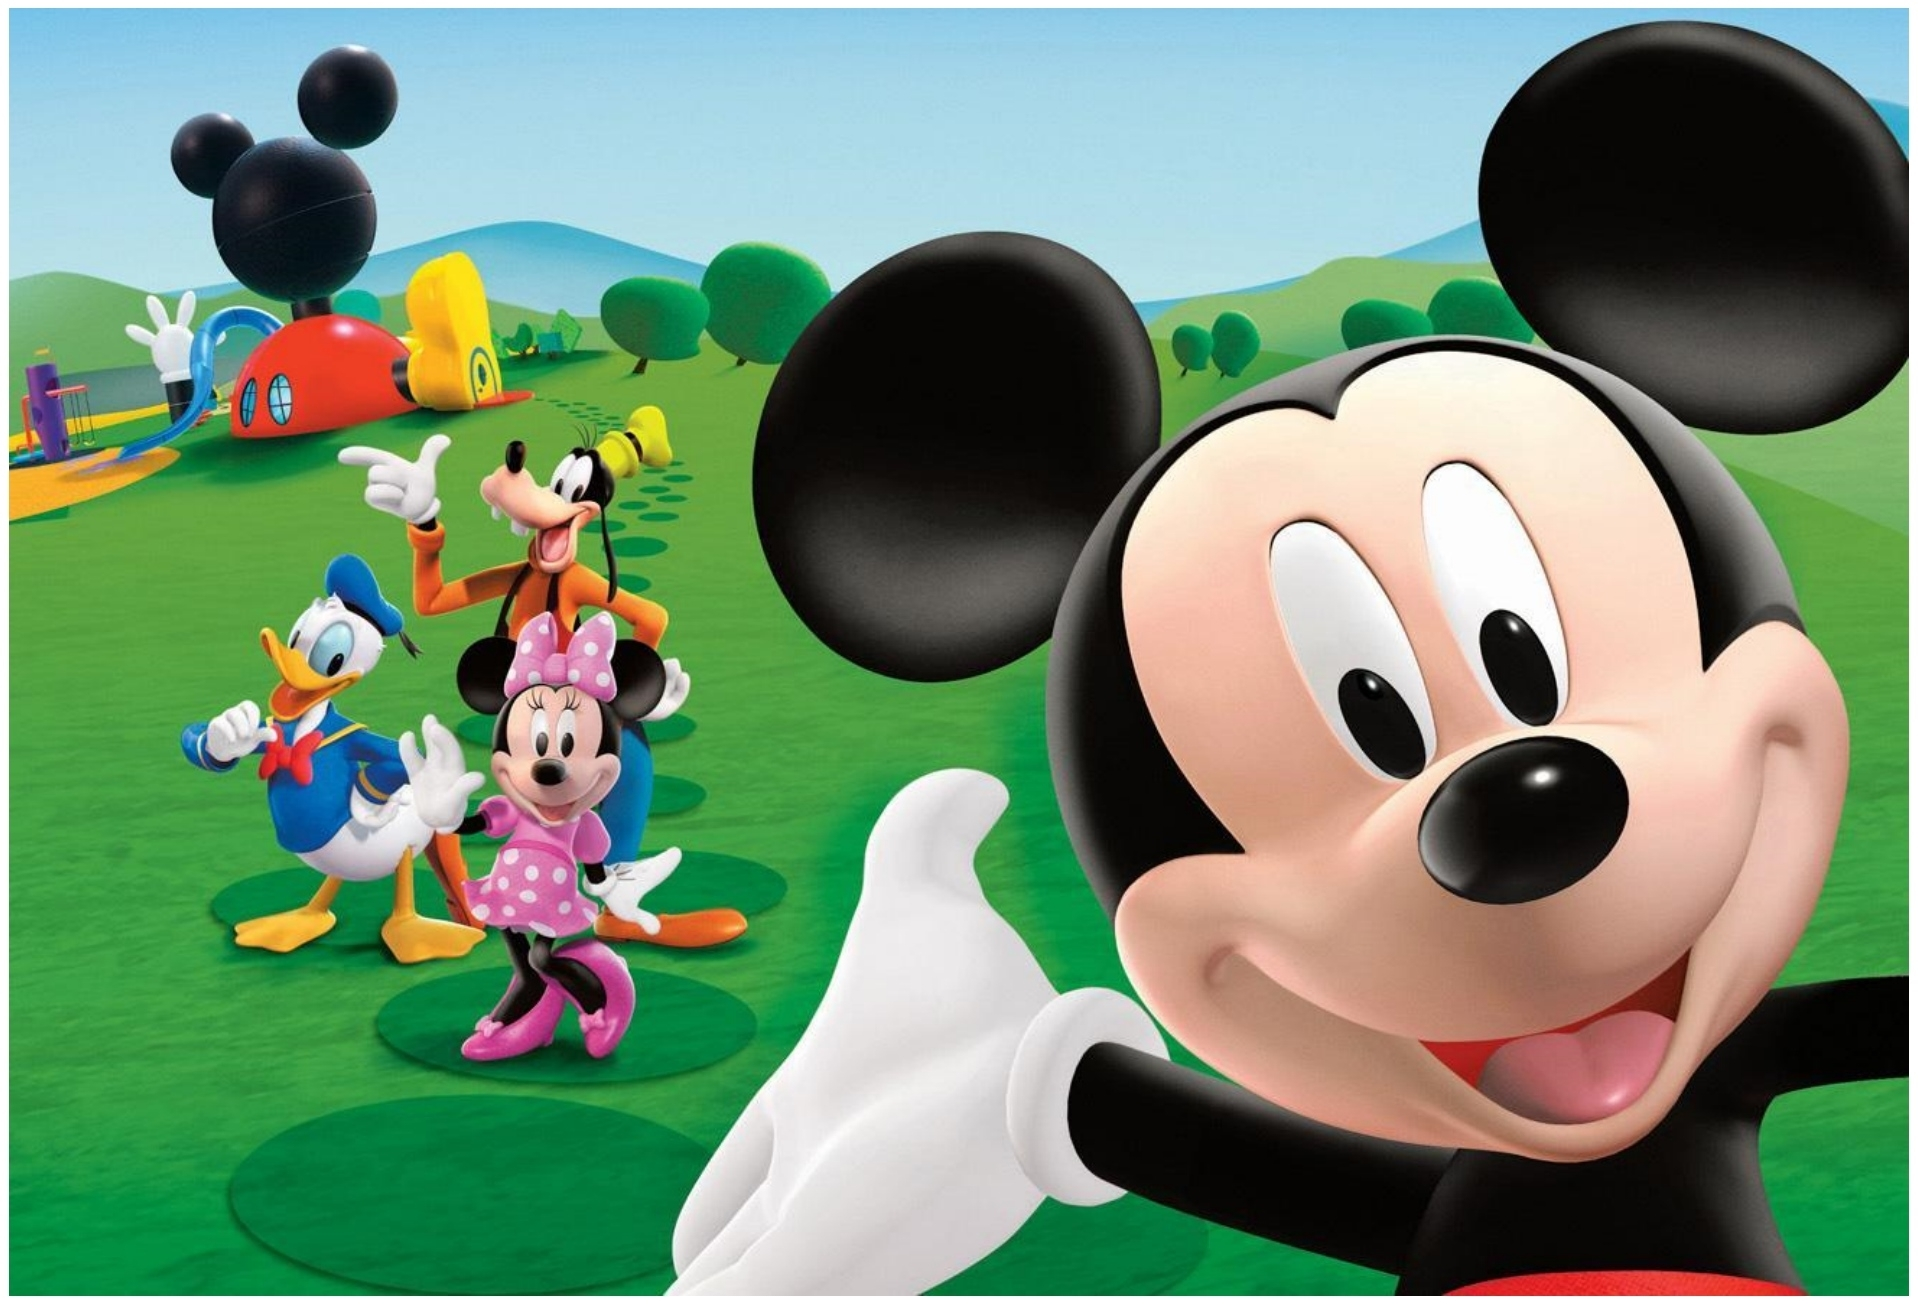 Title : mickey mouse wallpapers free download wallpapers free mickey 1918×1304. Dimension : 1918 x 1304. File Type : JPG/JPEG